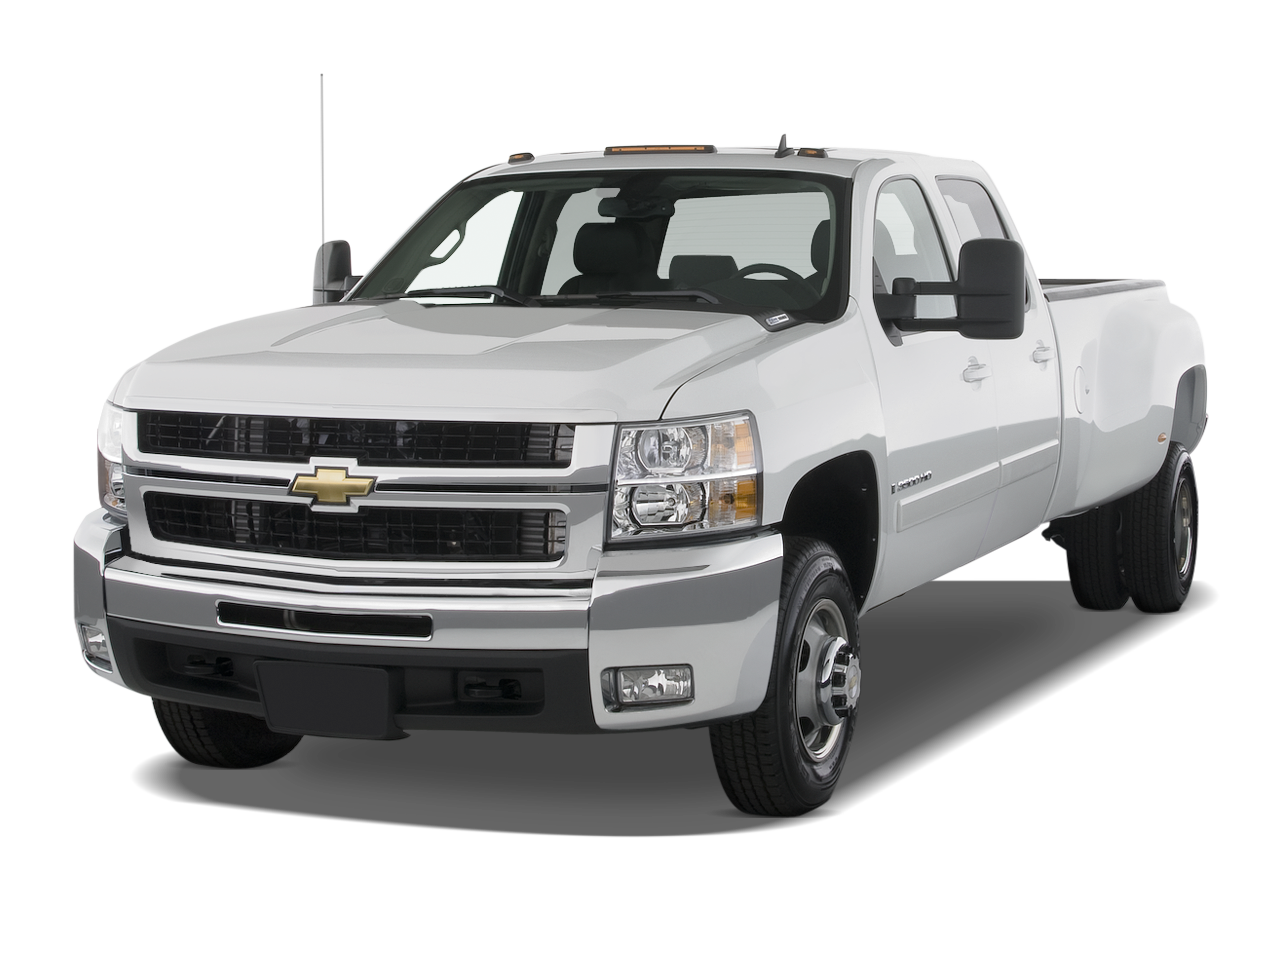 2019 chevrolet silverado lt trailboss unveiled ahead of. Black Bedroom Furniture Sets. Home Design Ideas